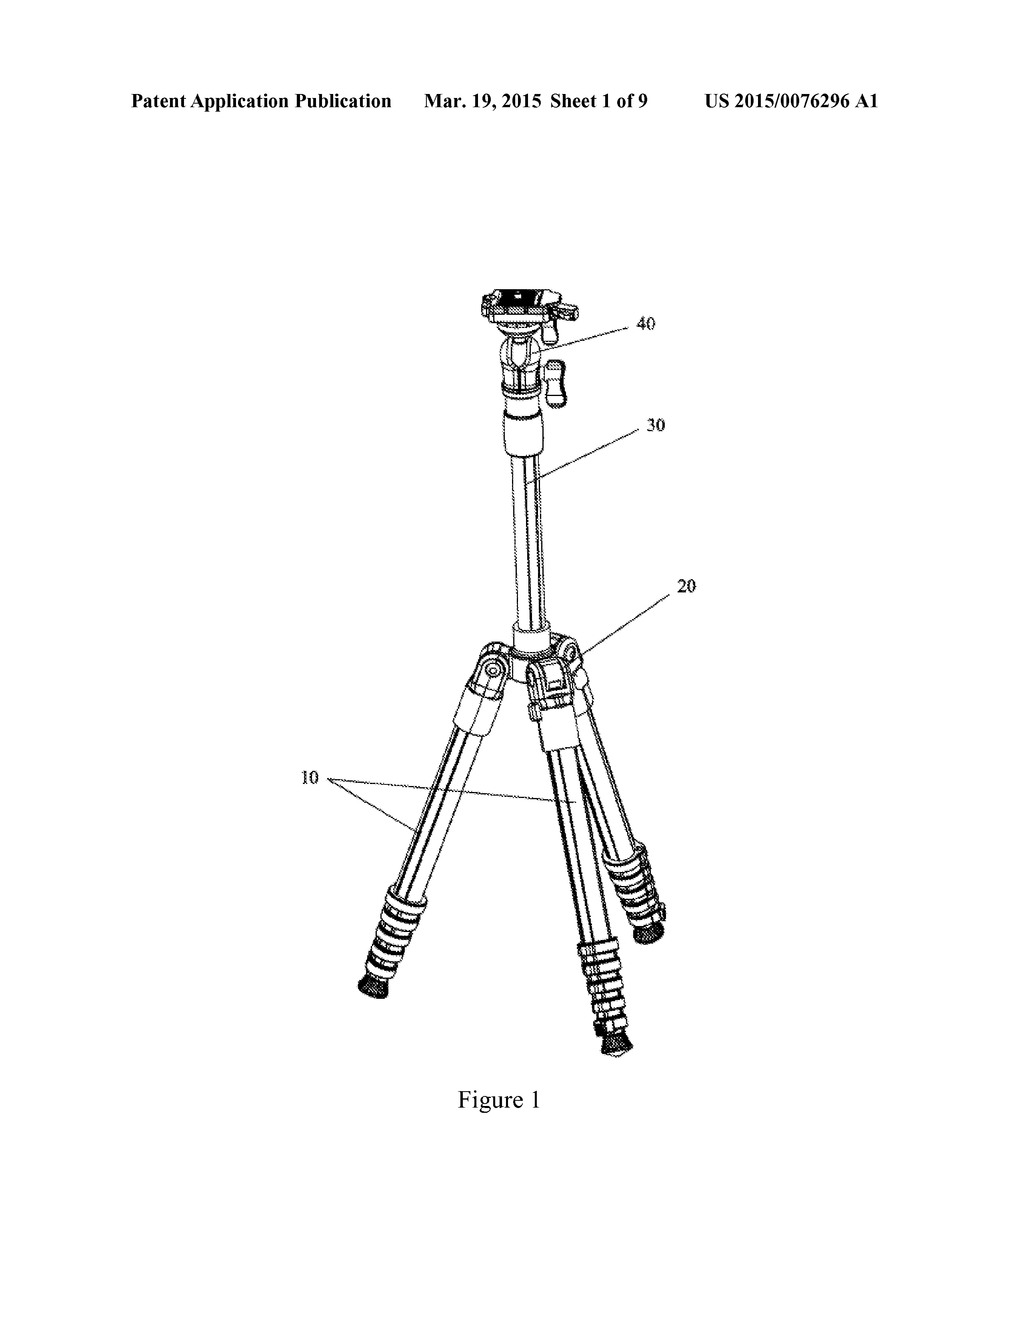 inversely foldable camera tripod being rapidly assembled diagram rh patentsencyclopedia com surveying tripod diagram camera tripod diagram